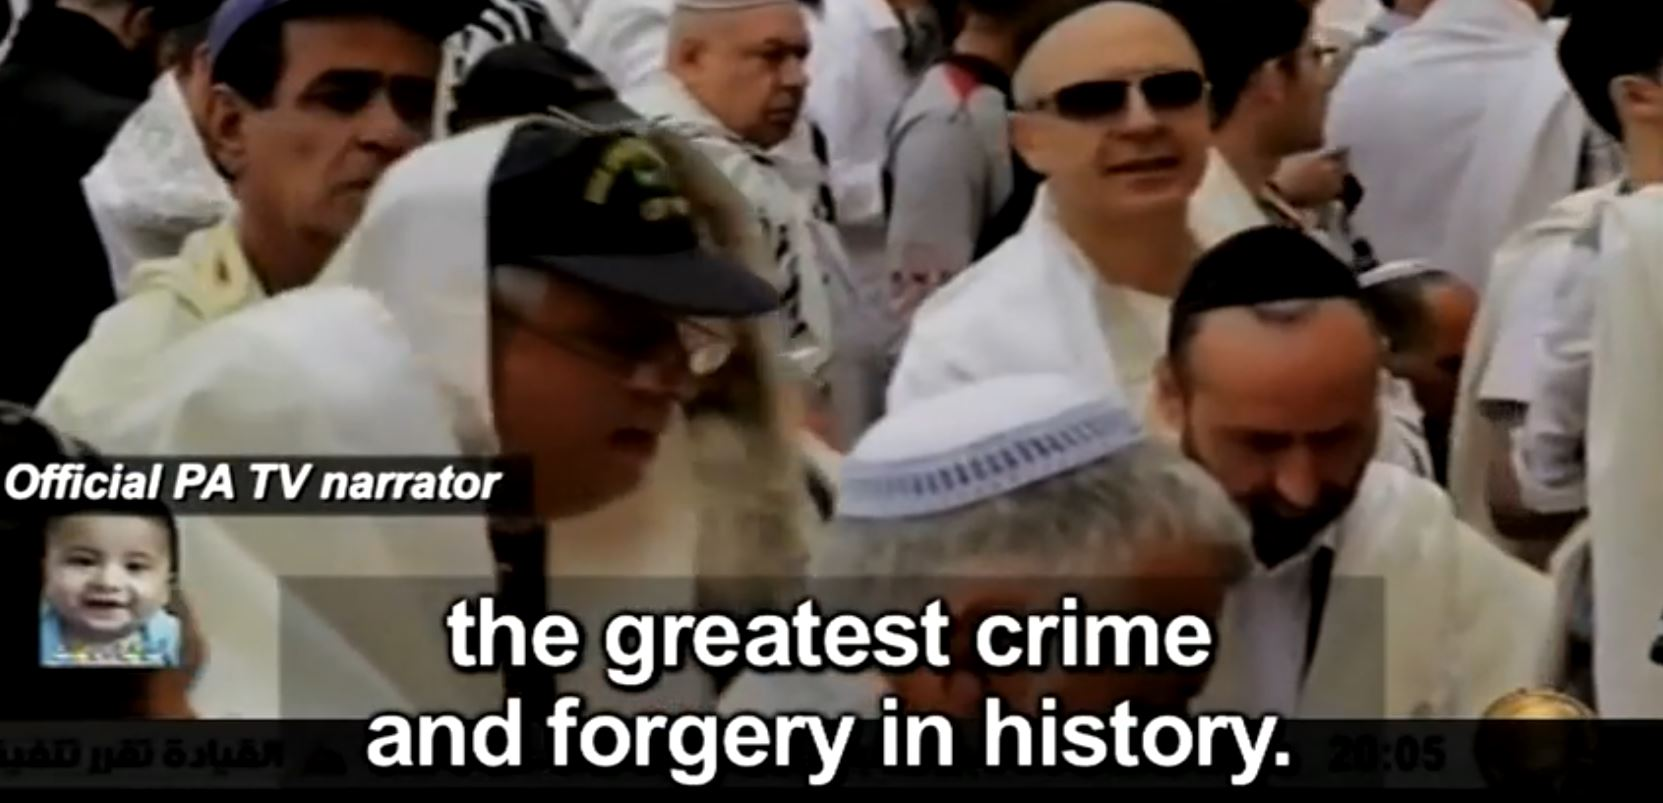 Jewish temple forgery